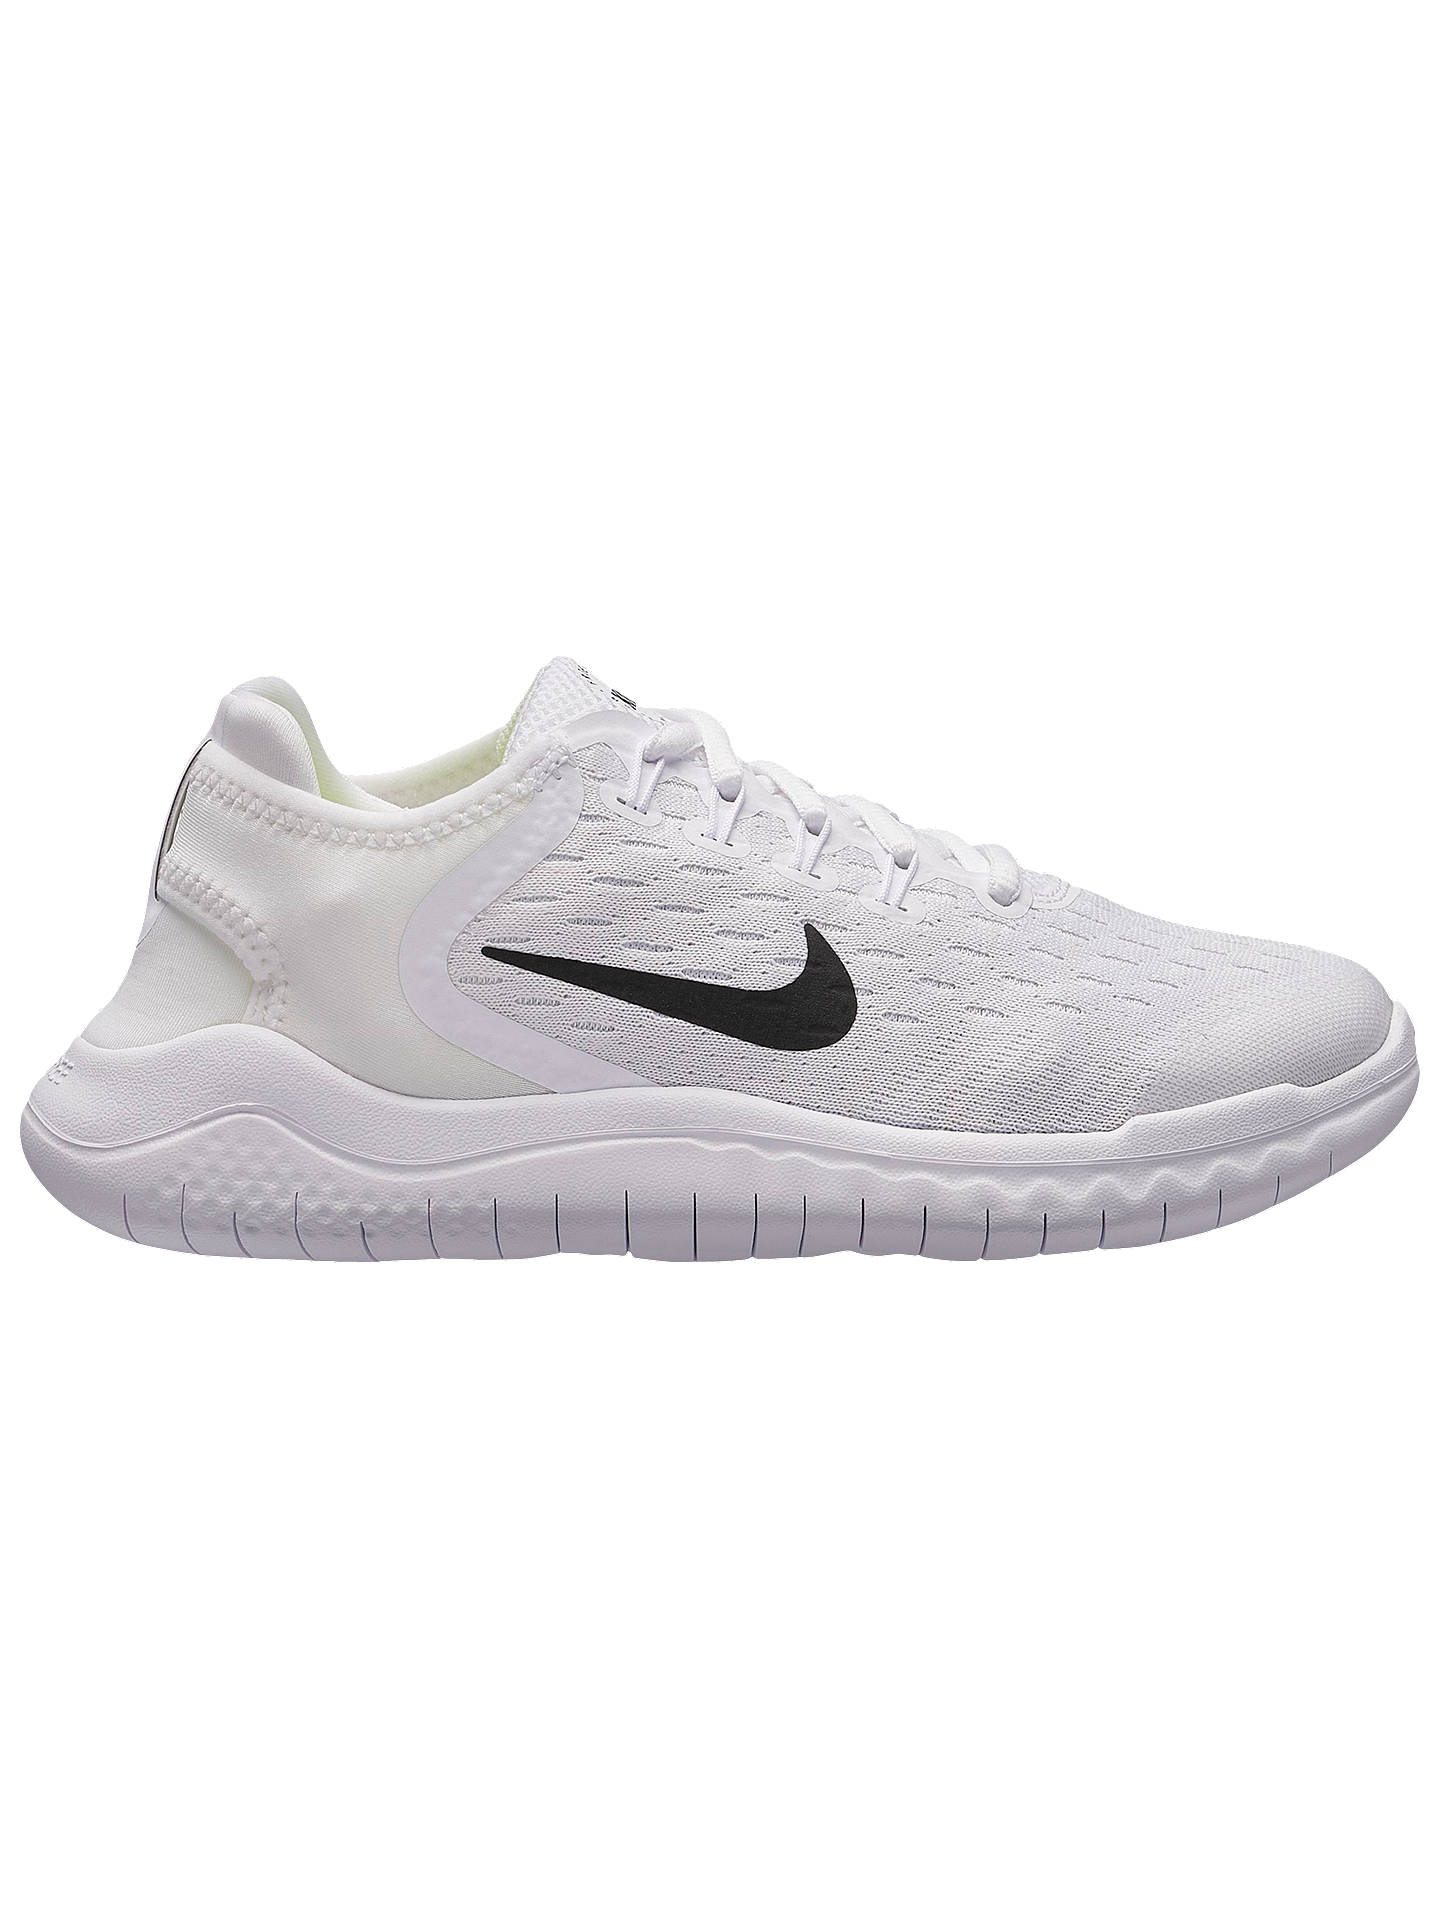 53cbea74d3efe Nike Children s Free RN 2018 Trainers at John Lewis   Partners